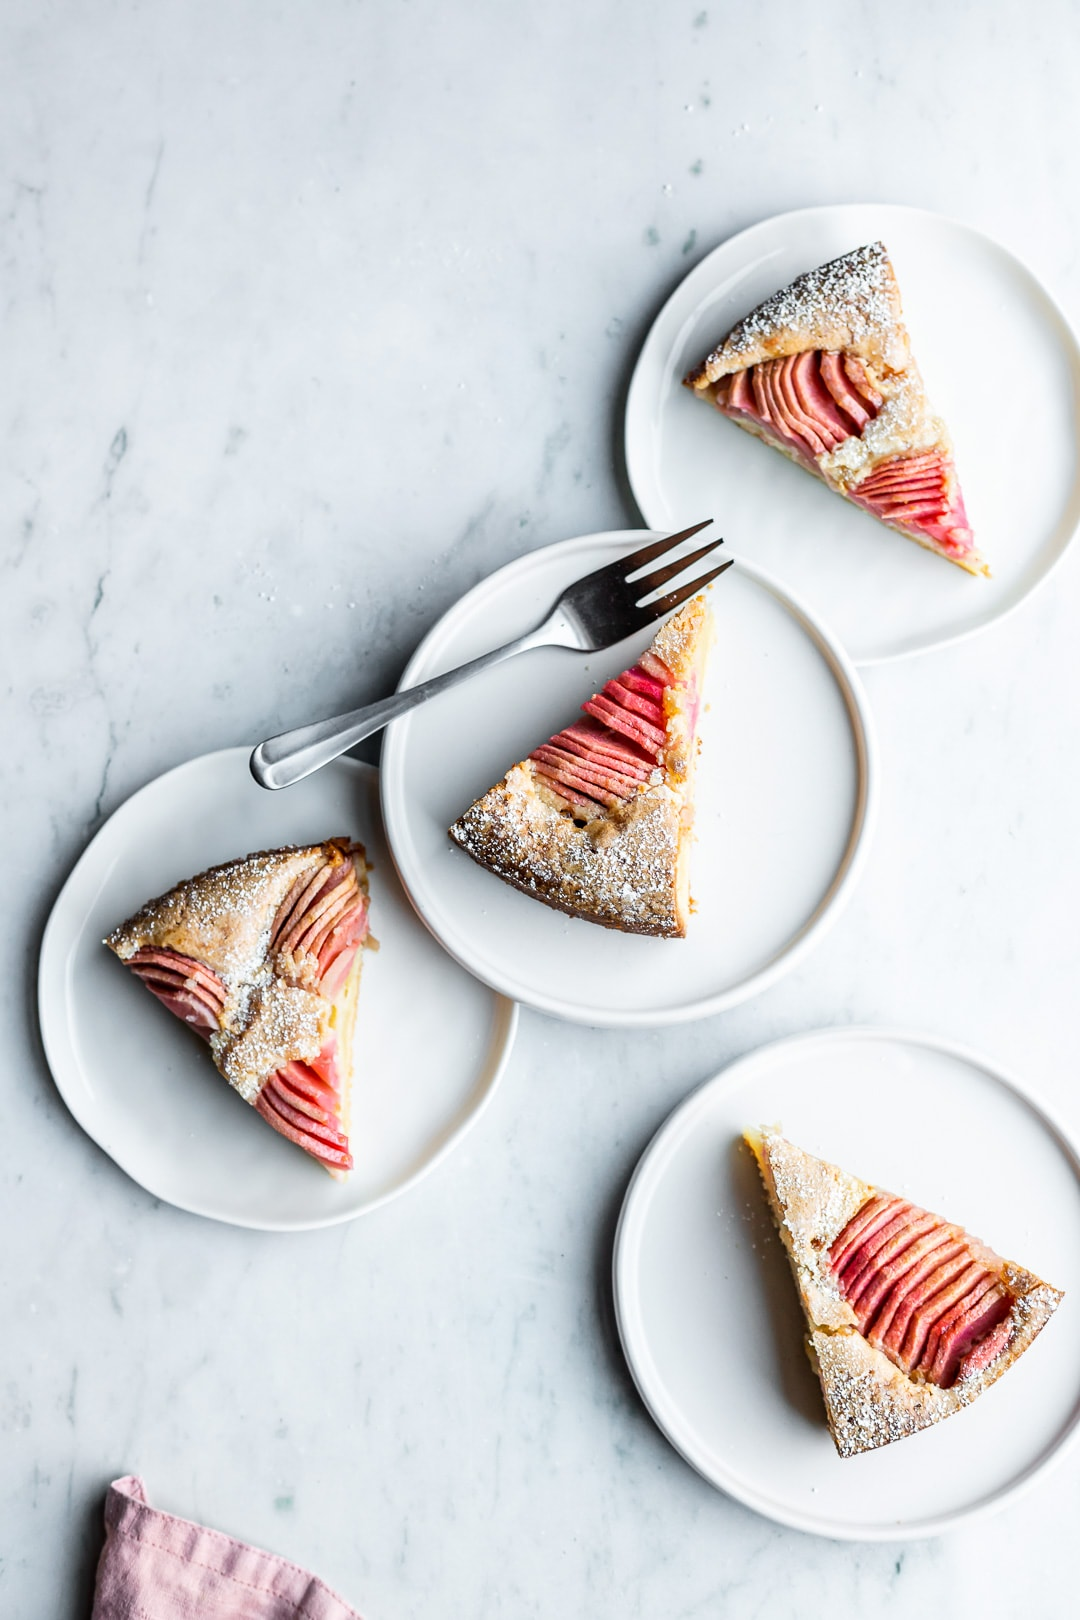 Slices of almond cake with pink apples on four white plates on a marble background